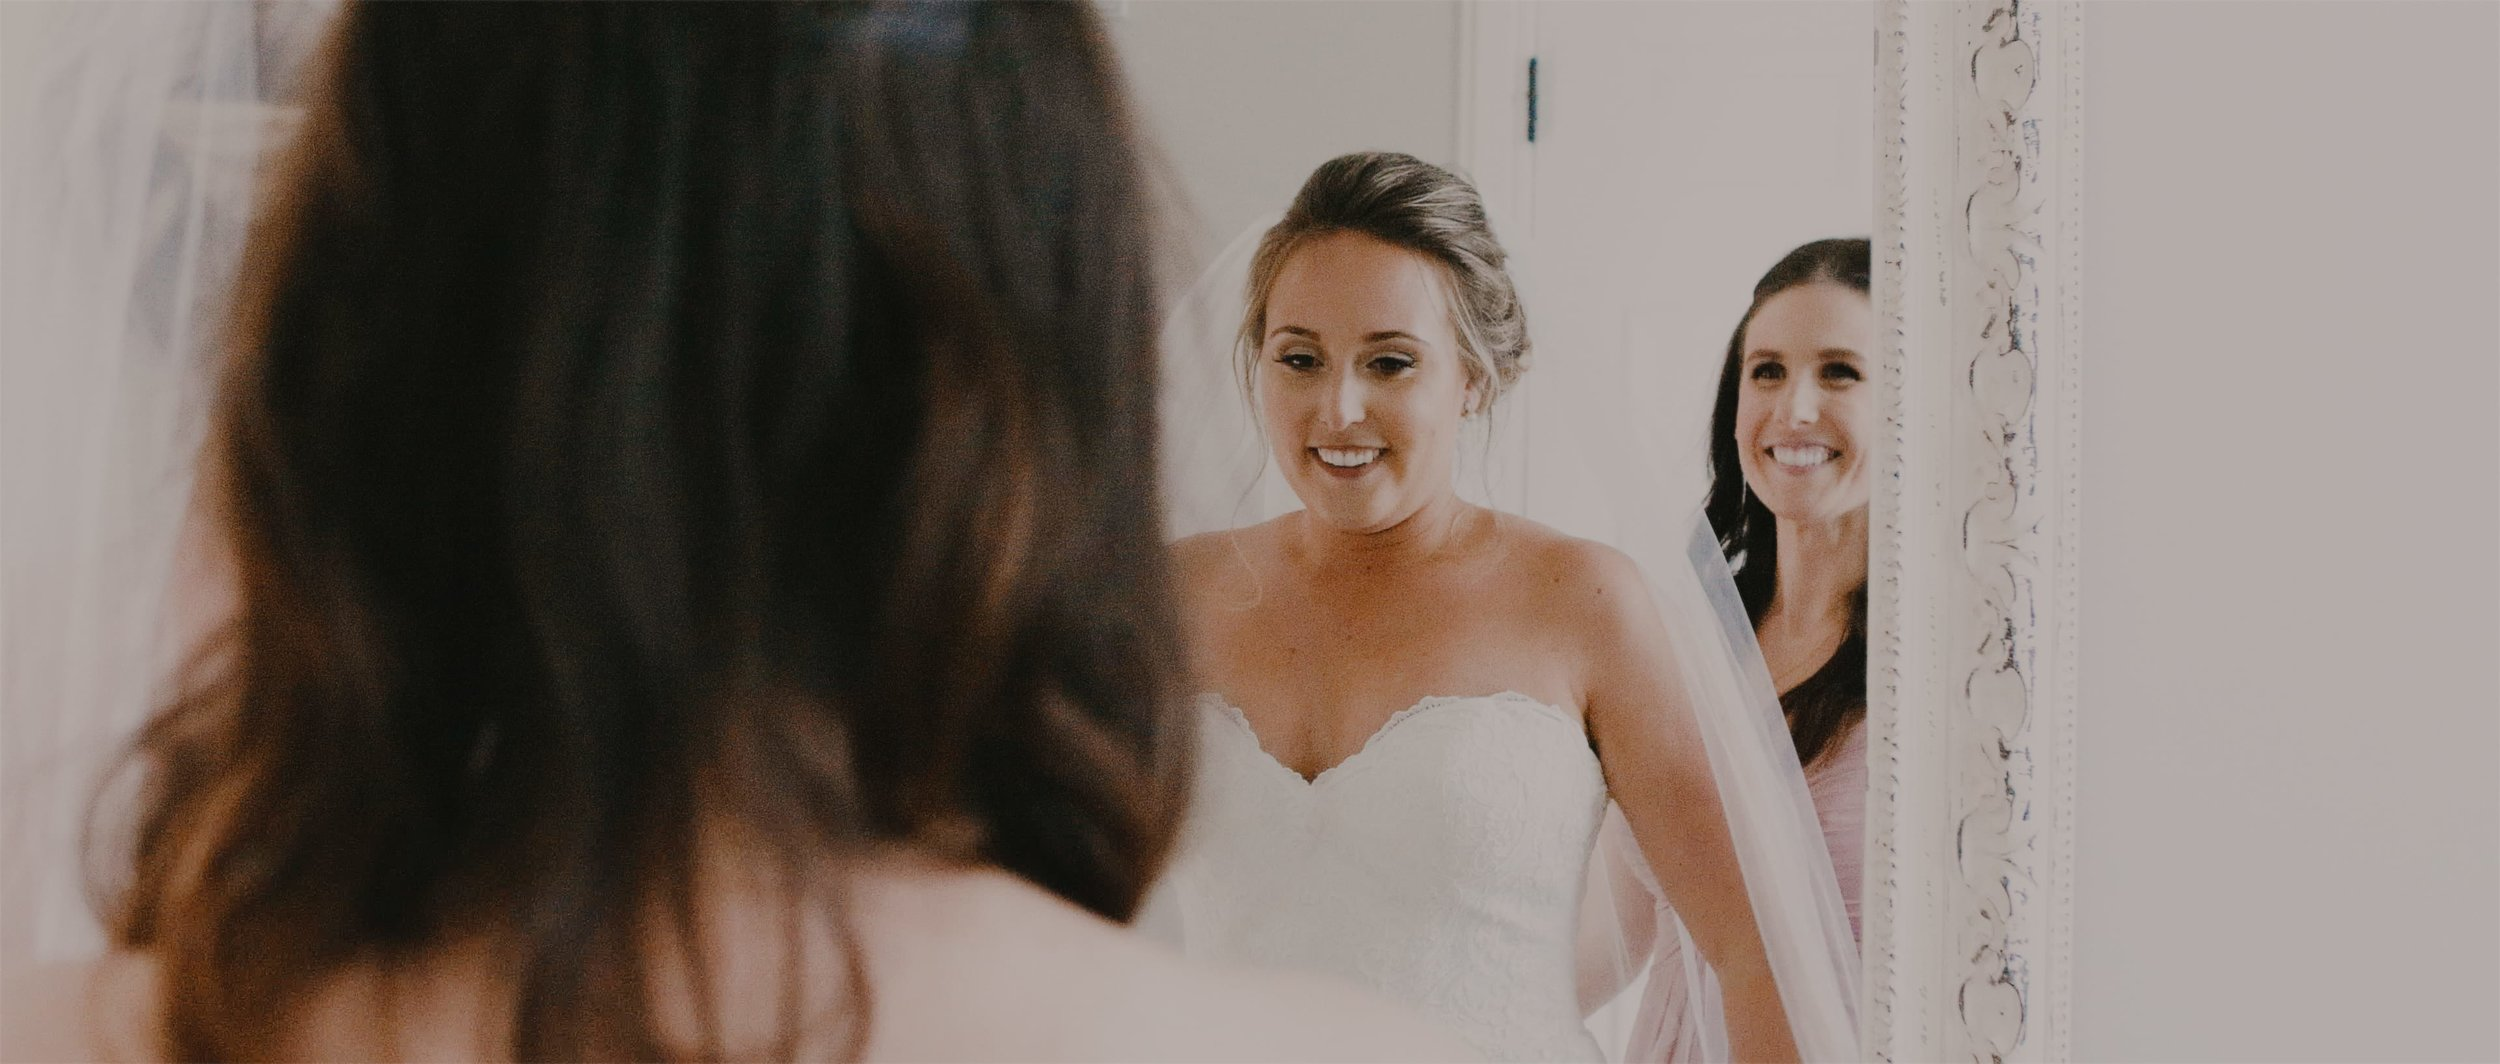 Bride Looks at Beautiful Dress in Mirror